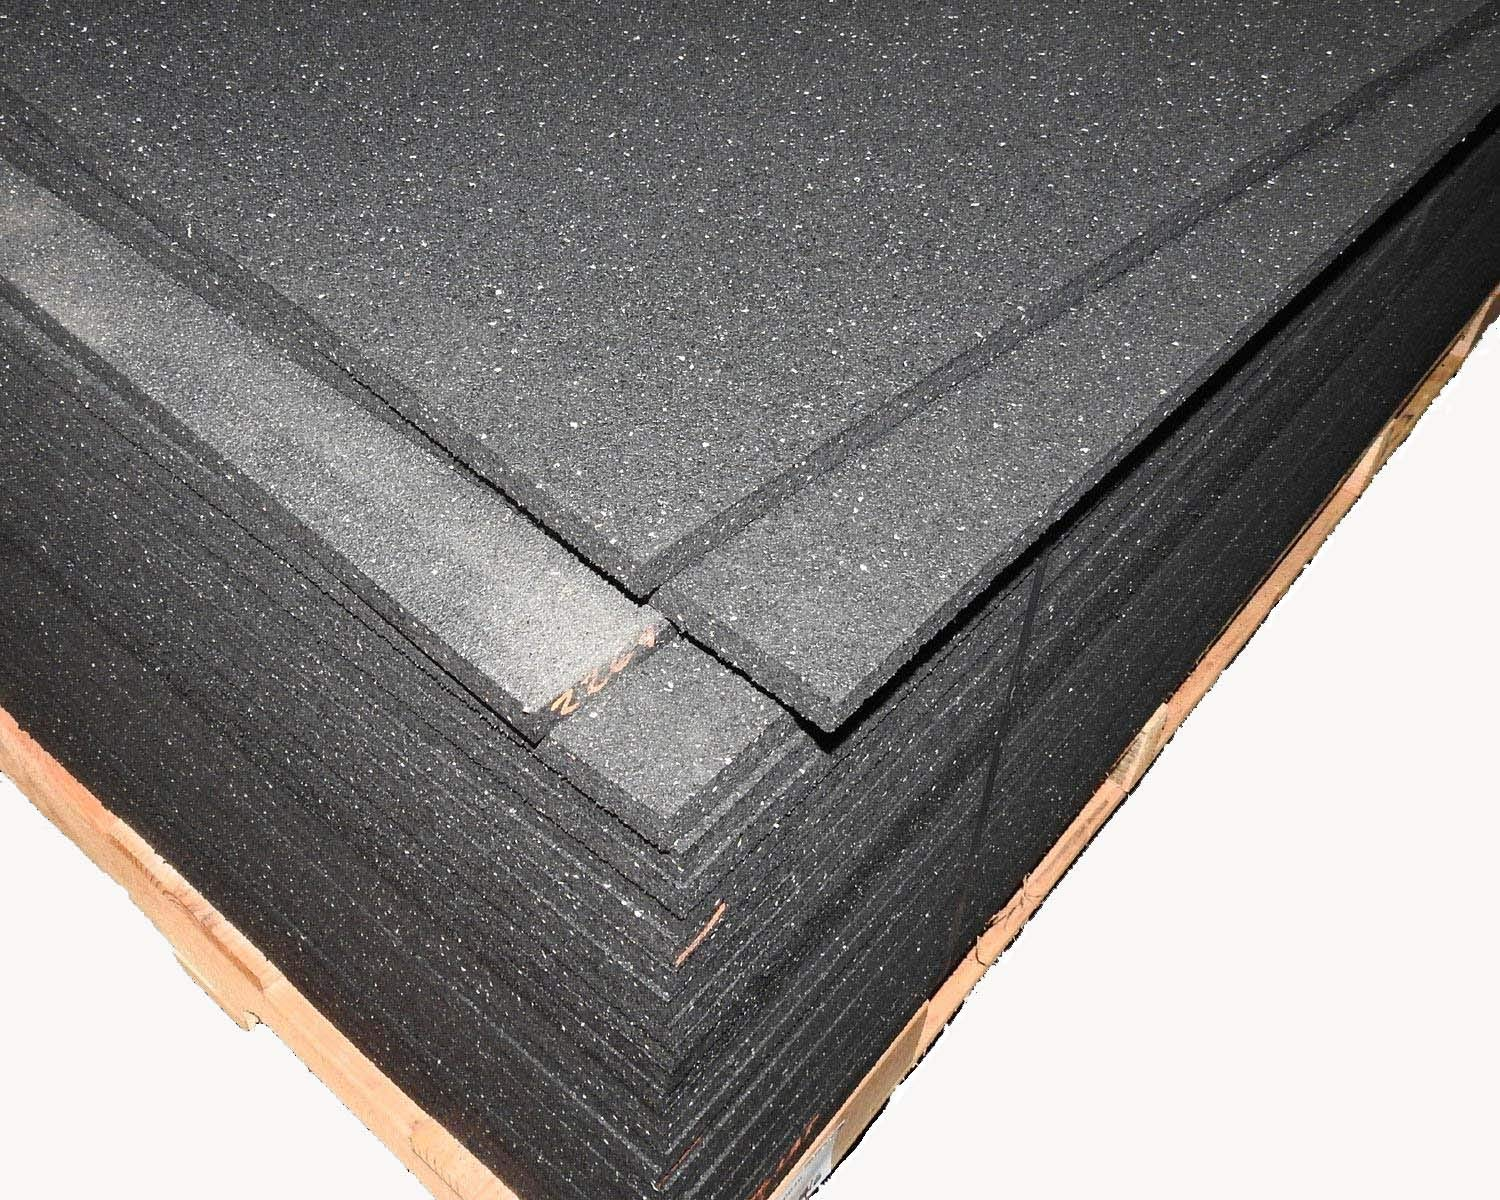 American Made Thick Rubber Gym Flooring 3 4 Thick 48 x 72 Weighs 90 lbs.